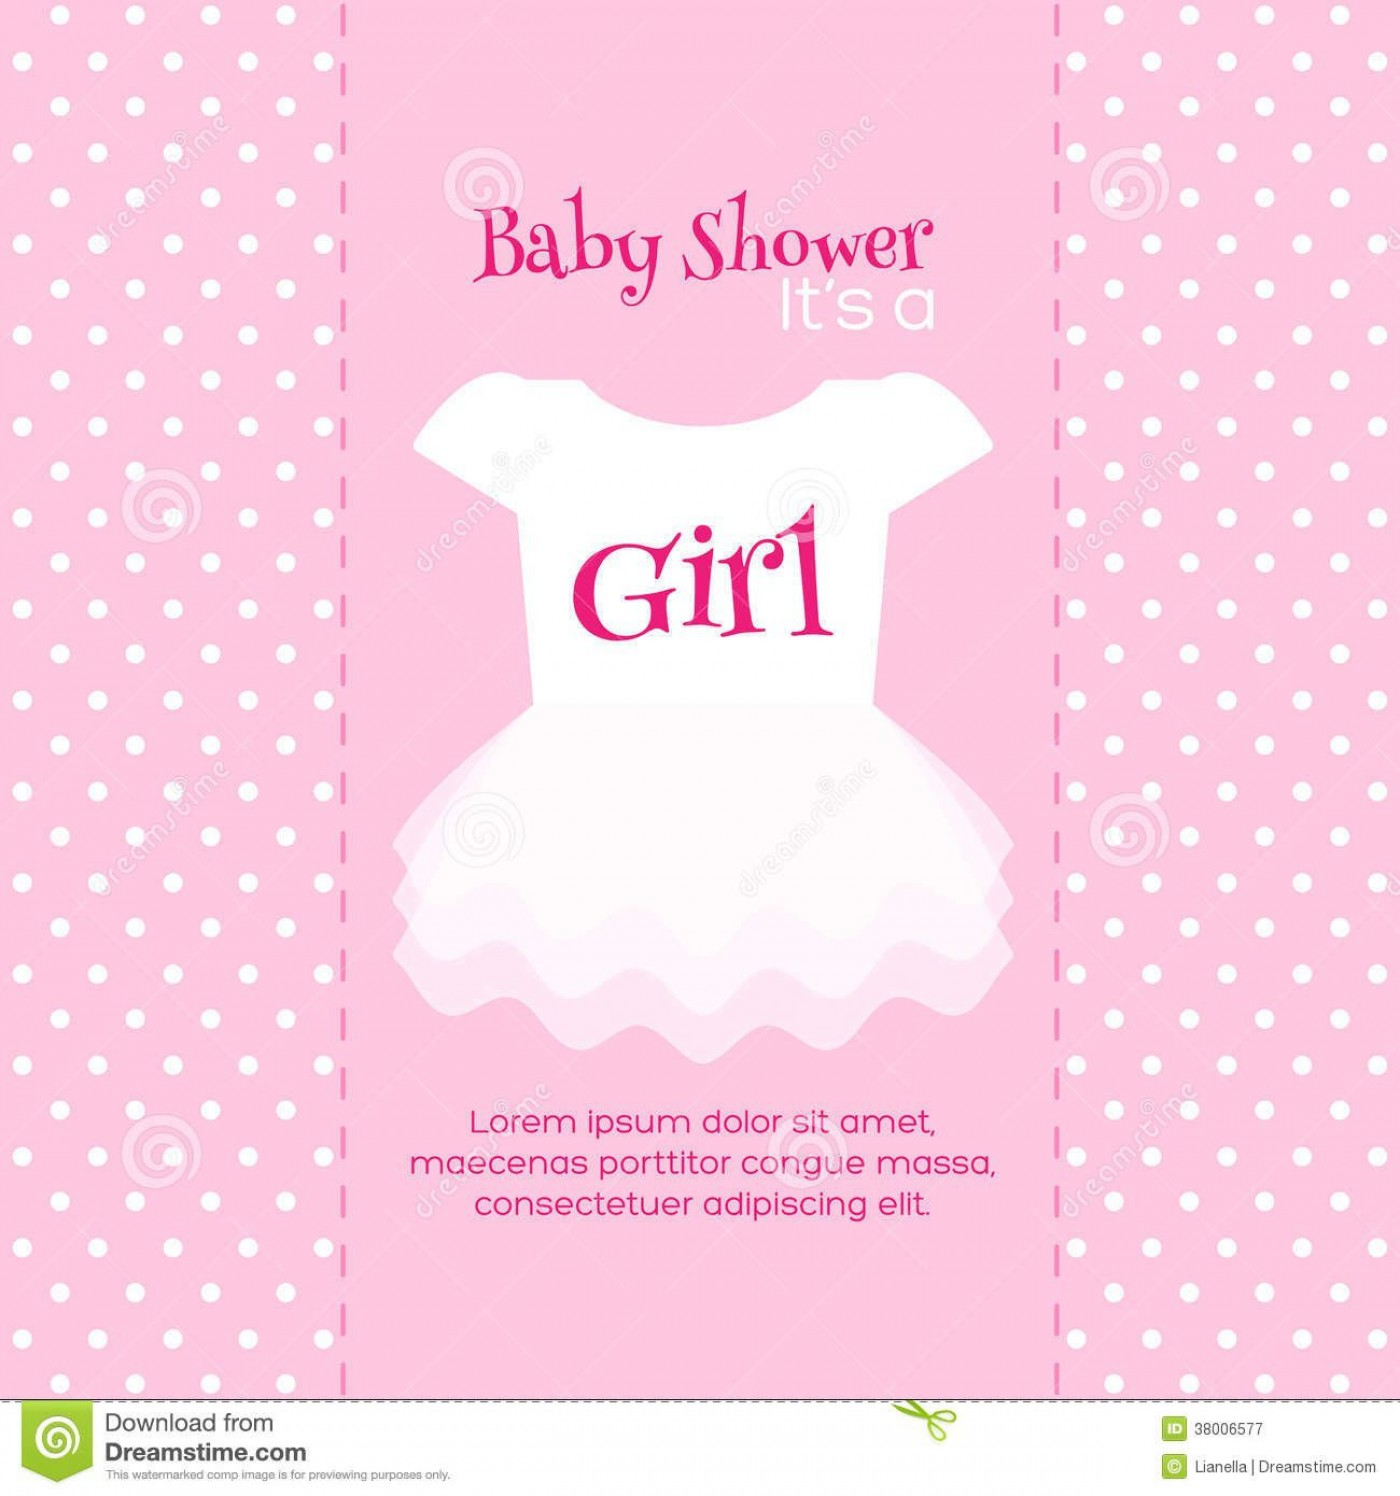 005 Astounding Baby Shower Invitation Card Template Free Download Concept  Indian1400